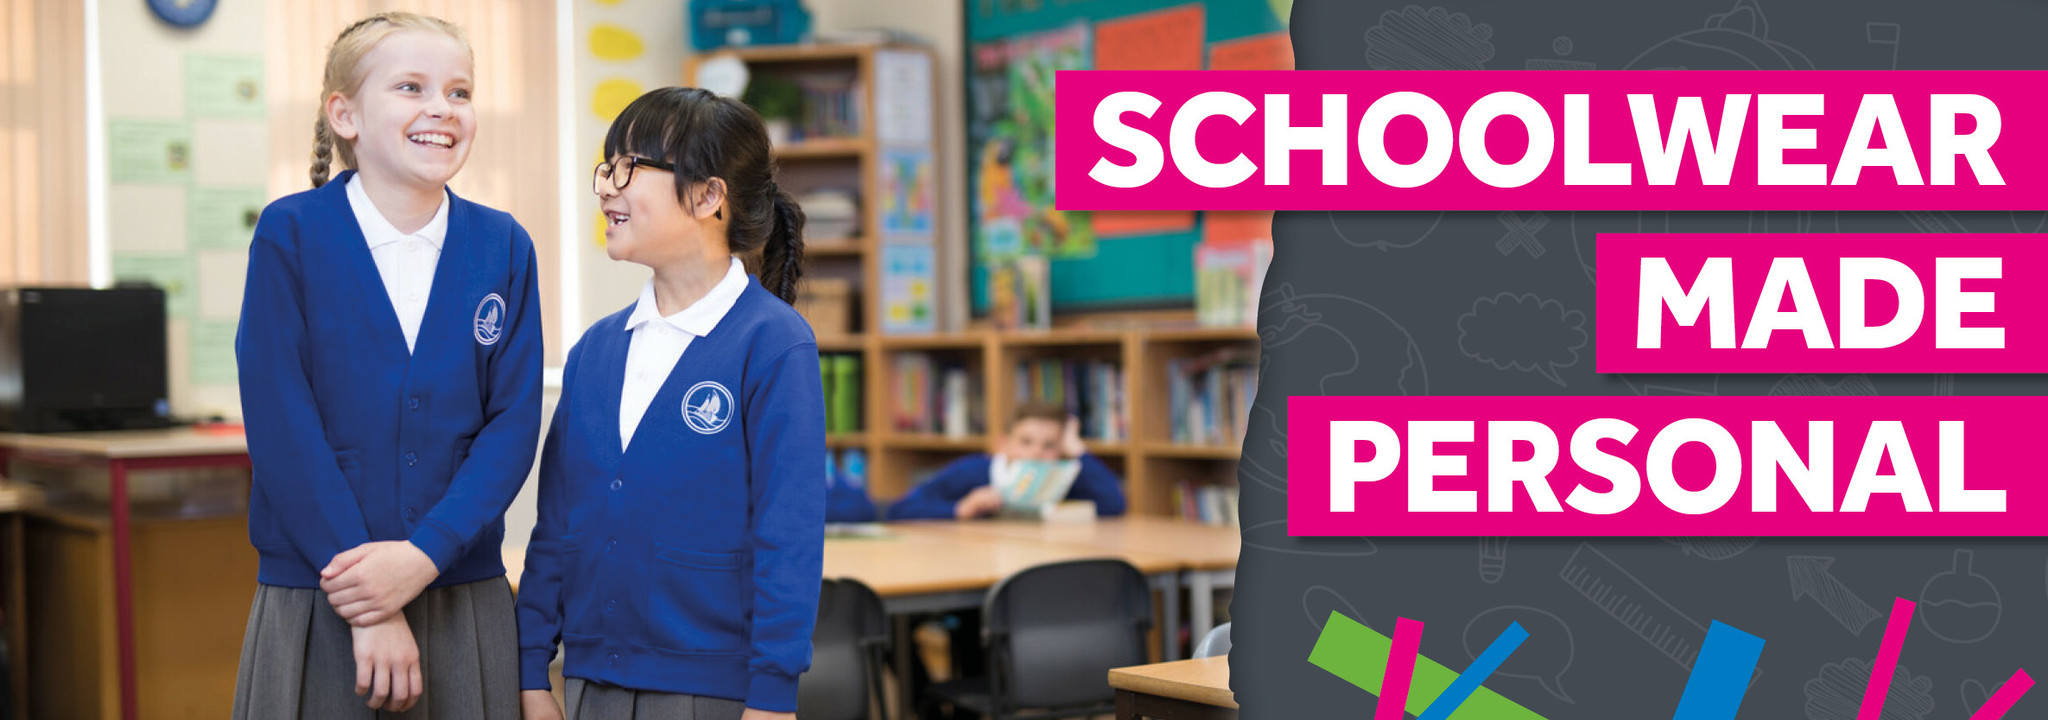 Home Page Banner - Schoolwear Made Personal